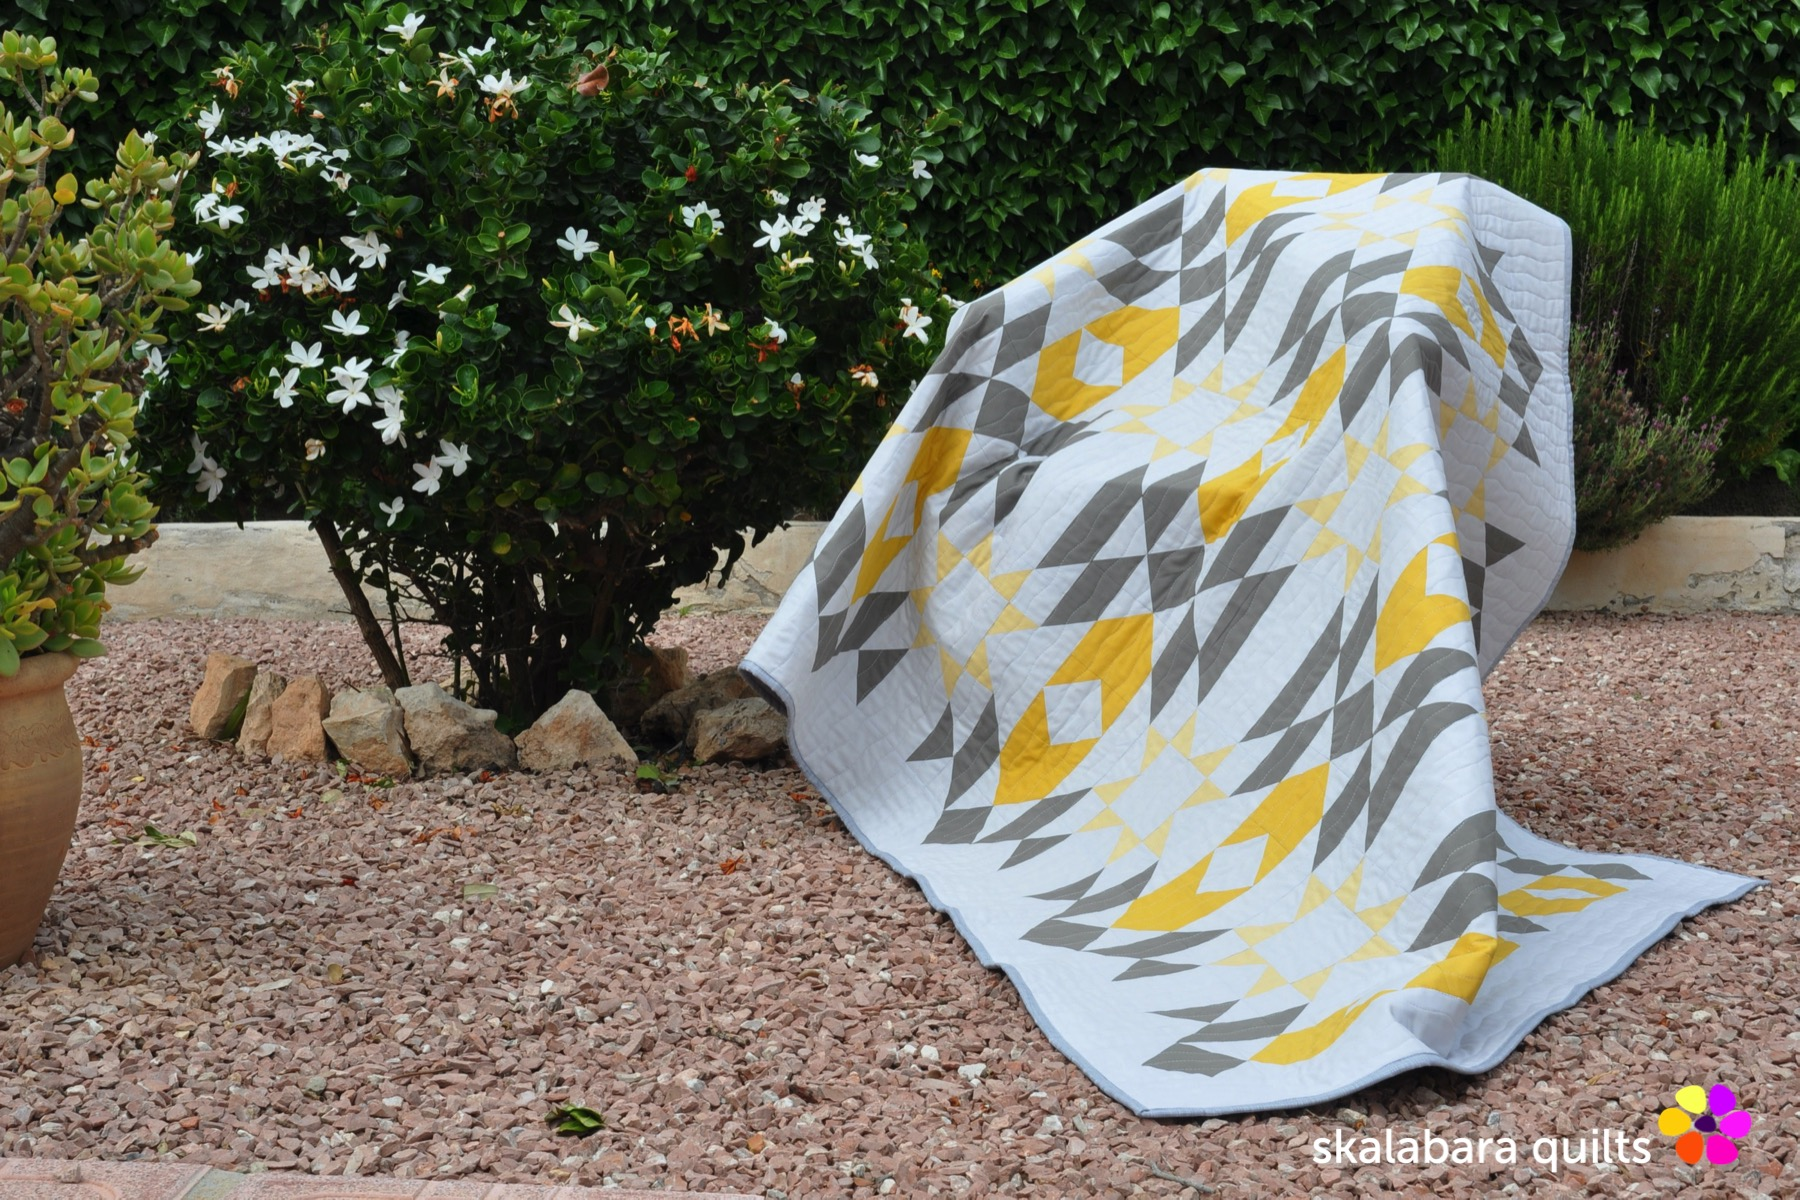 atmosphere quilt 3 - skalabara quilts